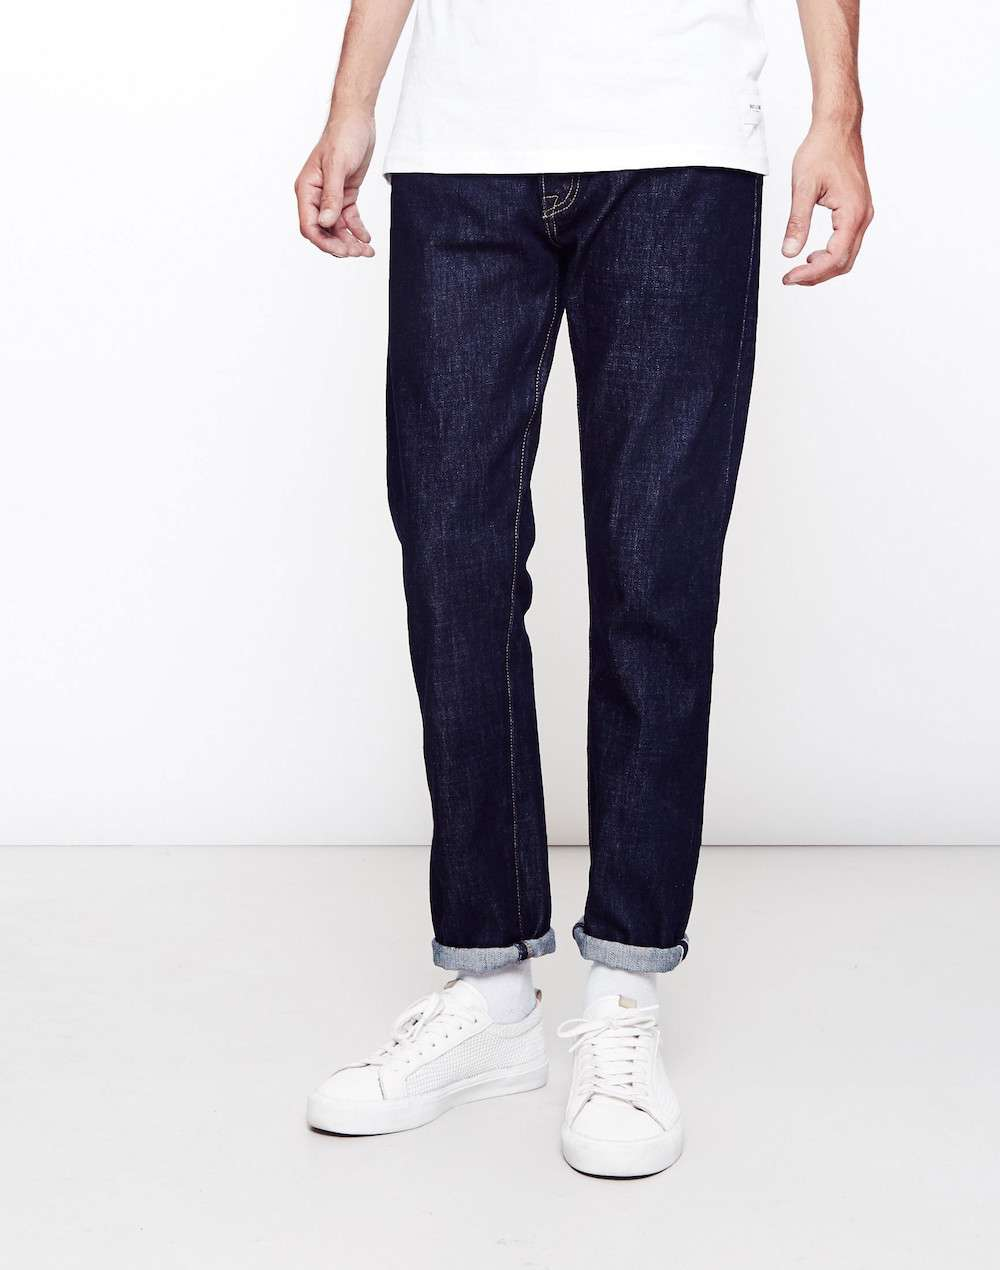 Levi 501 tapered jeans mens